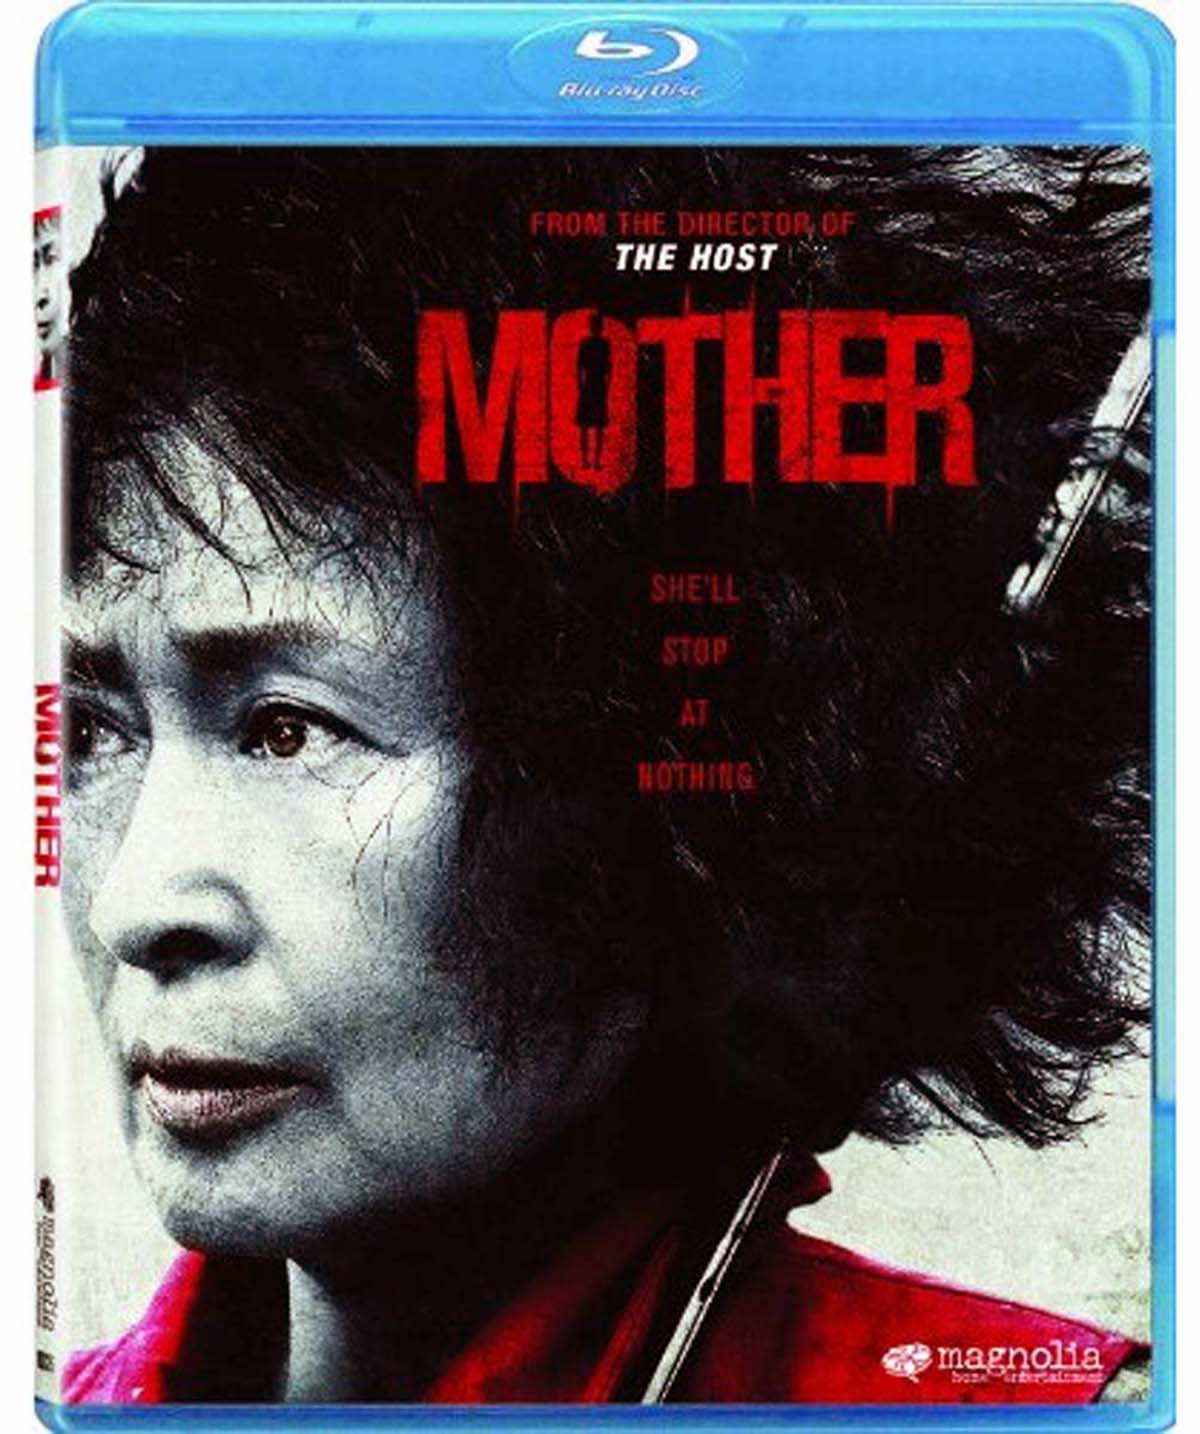 mother-madeo-movie-blu-ray-dvd-case-box